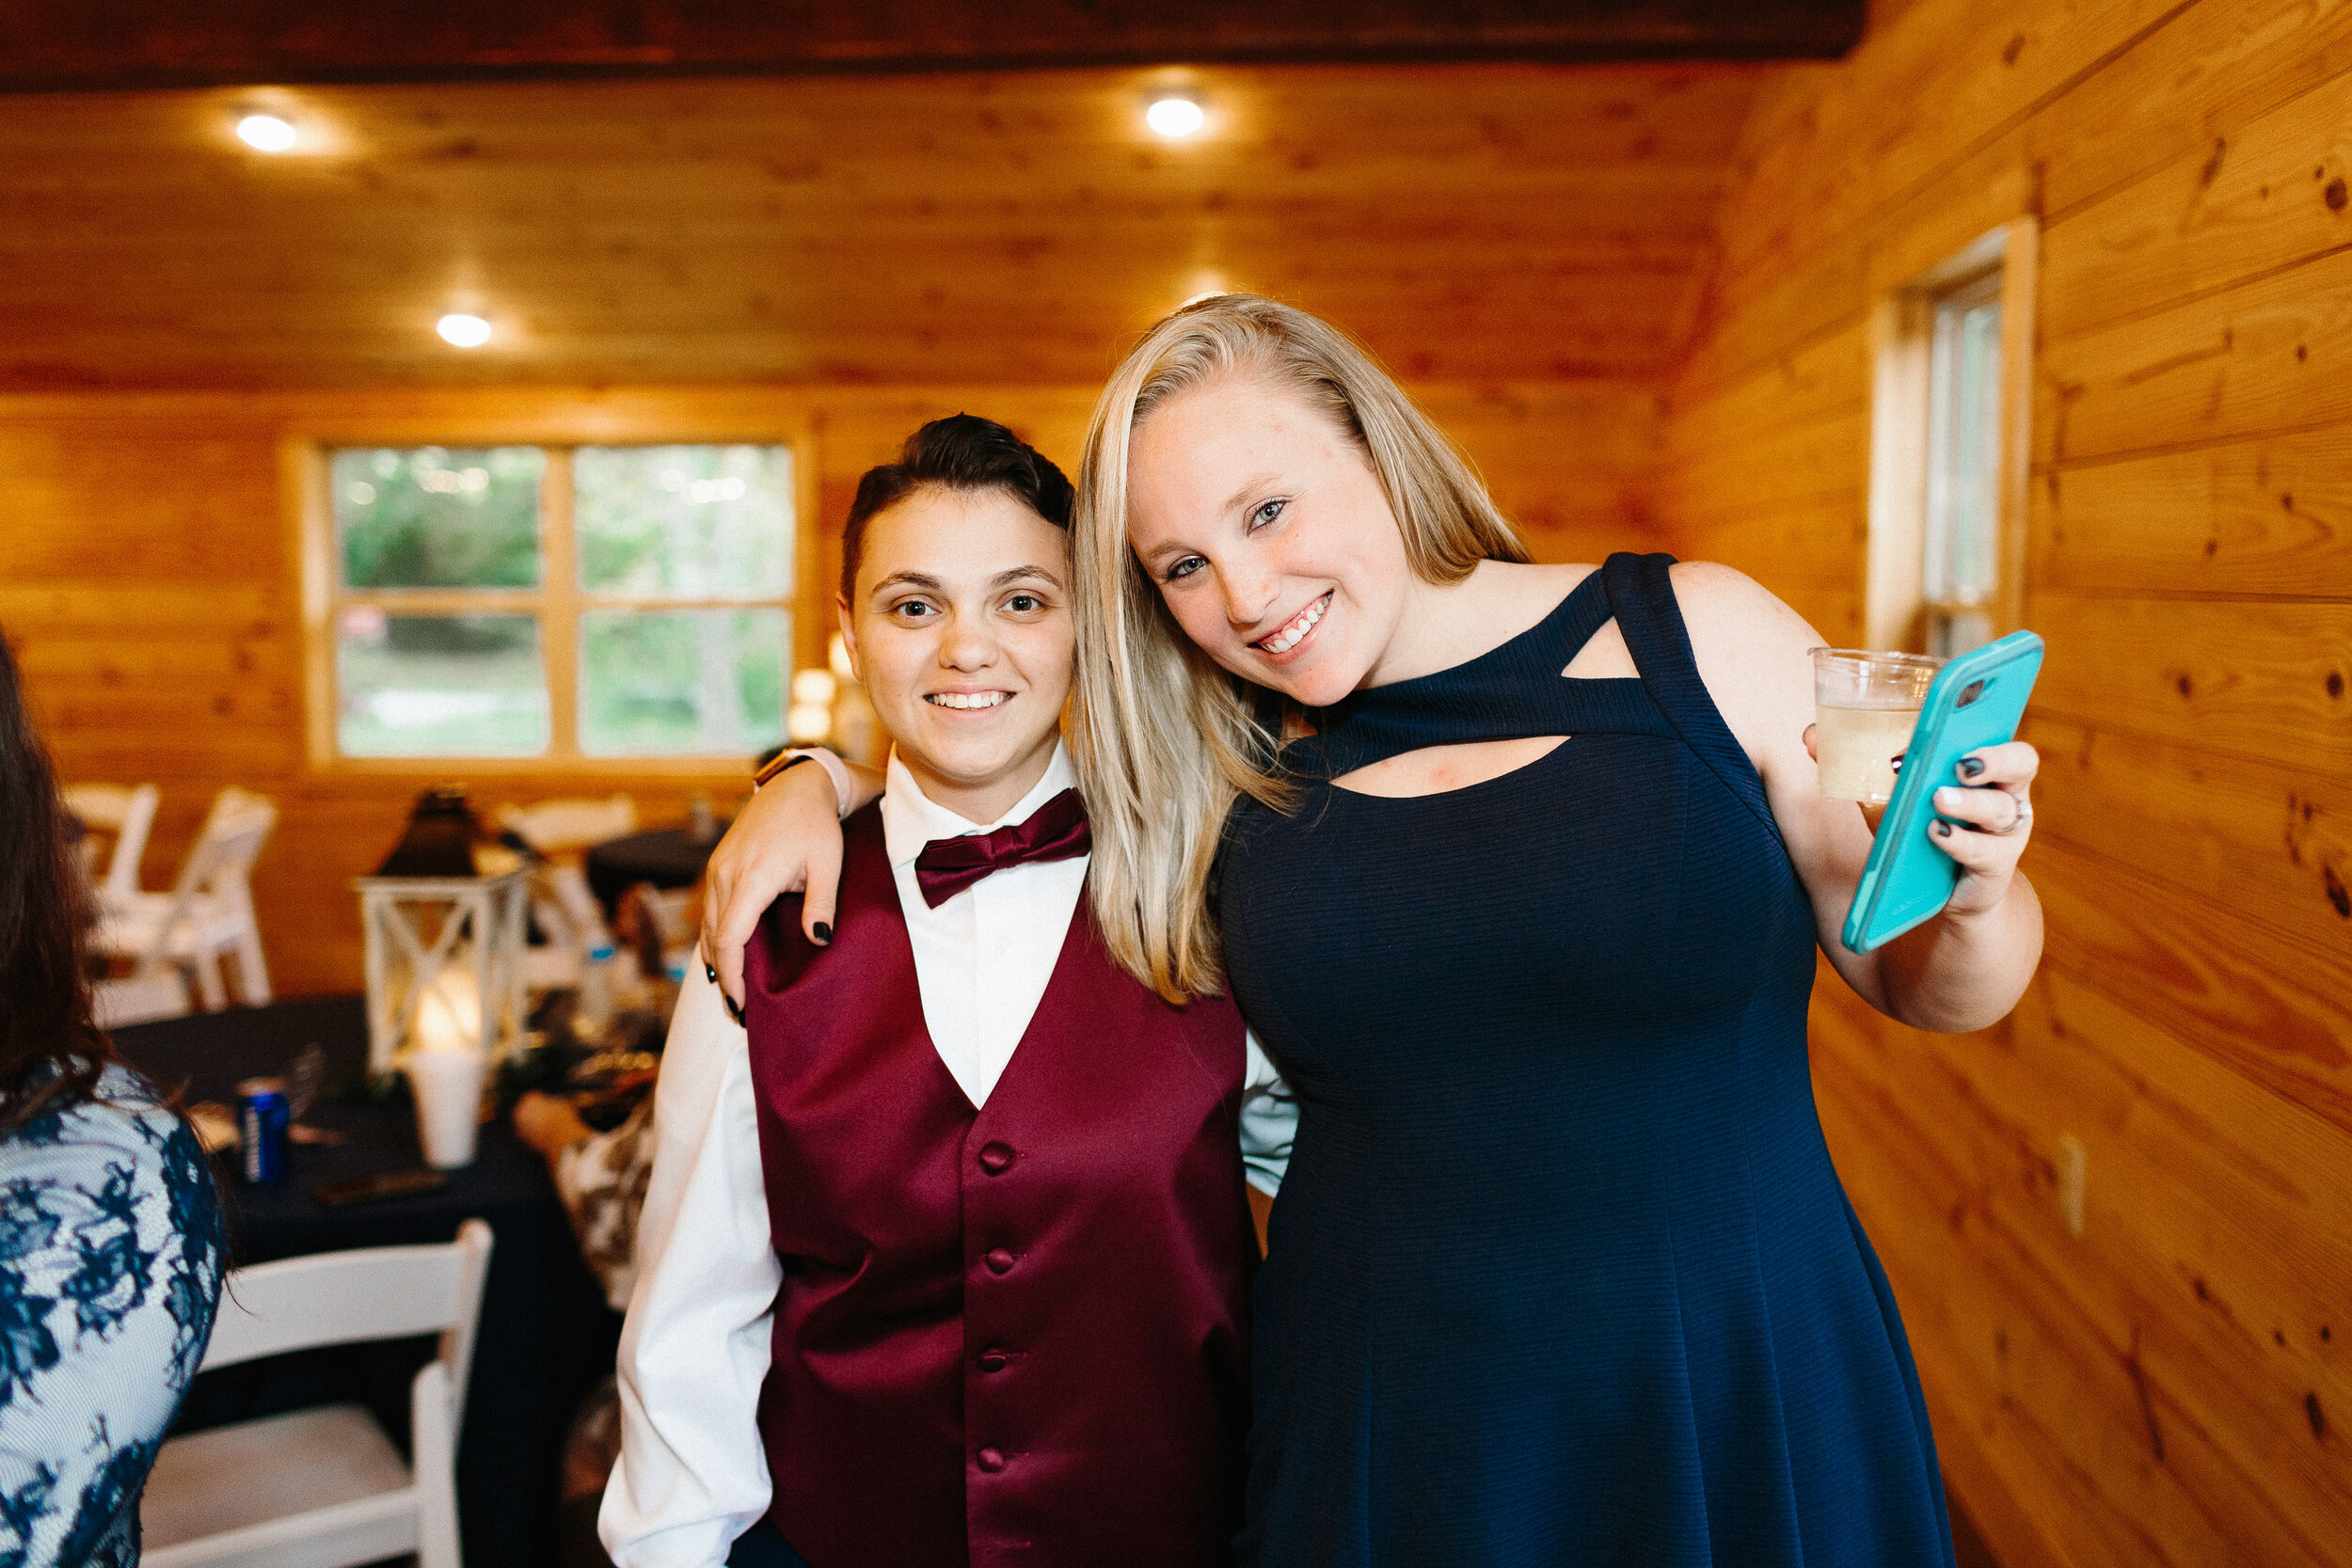 atlanta_wedding_photographers_georgia_same_sex_rustic_barn_farm_lesbian_weddings_inclusive_3100.jpg